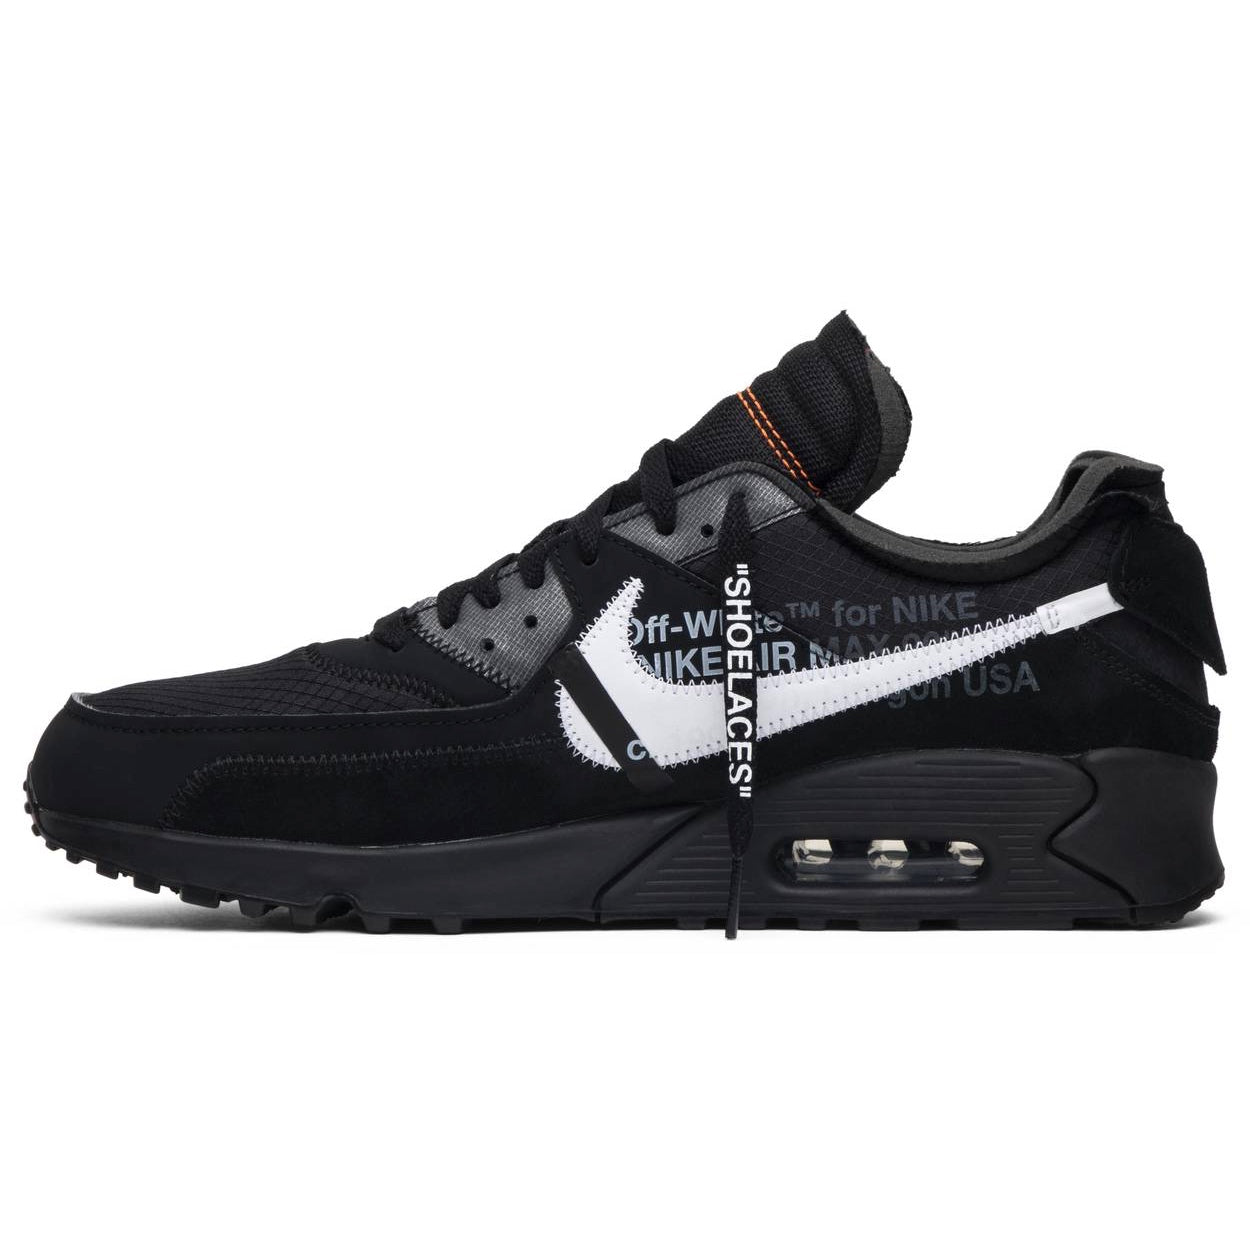 Air Max 90 OFF-WHITE Black - After Burn